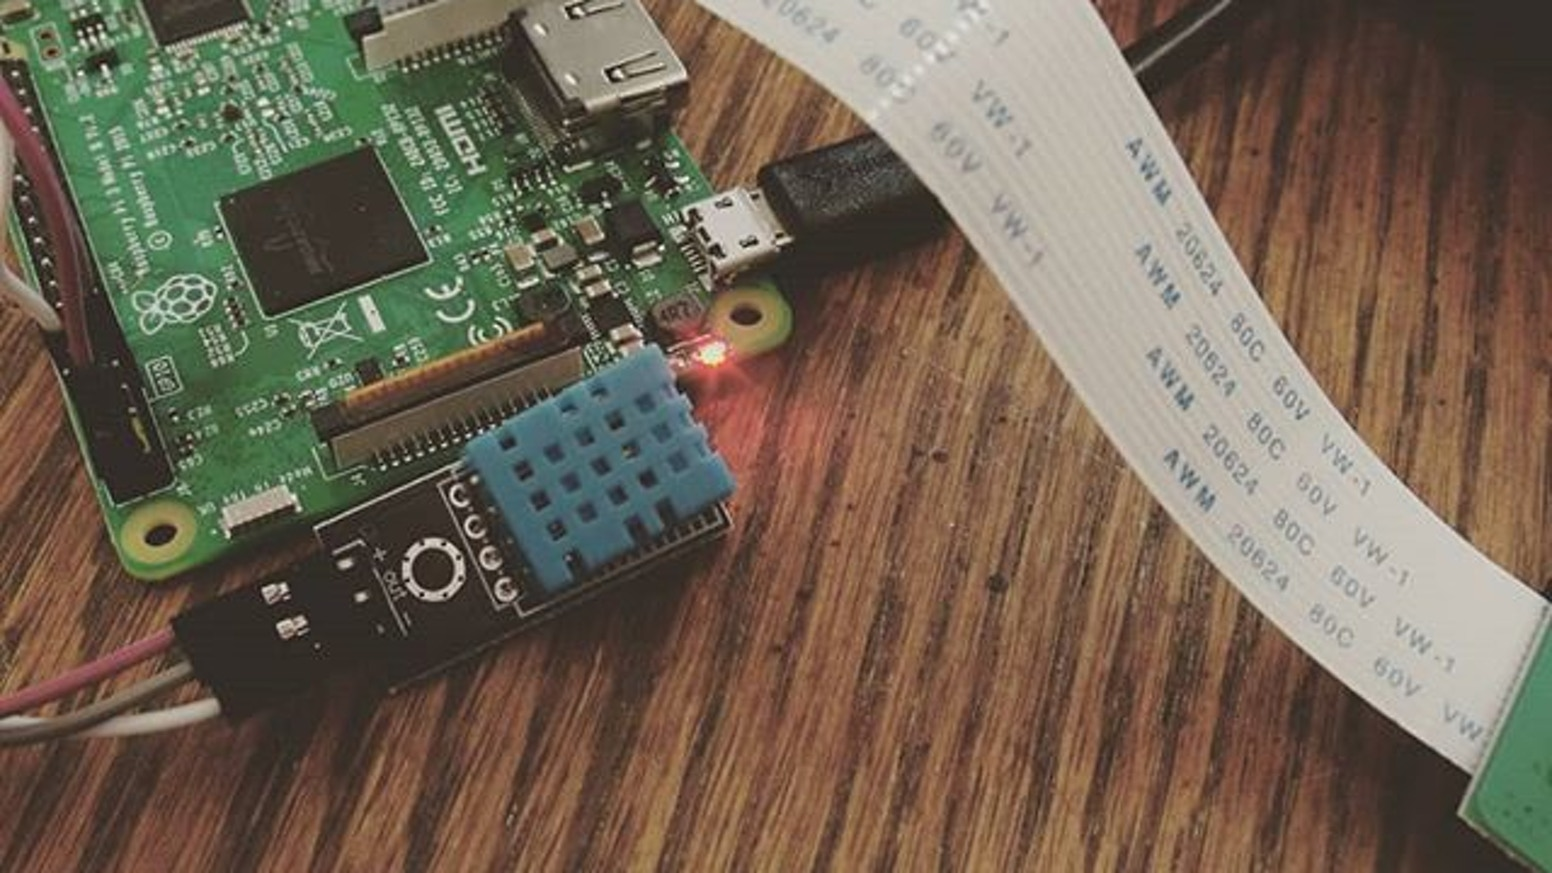 Raspberry Pi Cameras & Temperature Sensors: An IoT Guide by